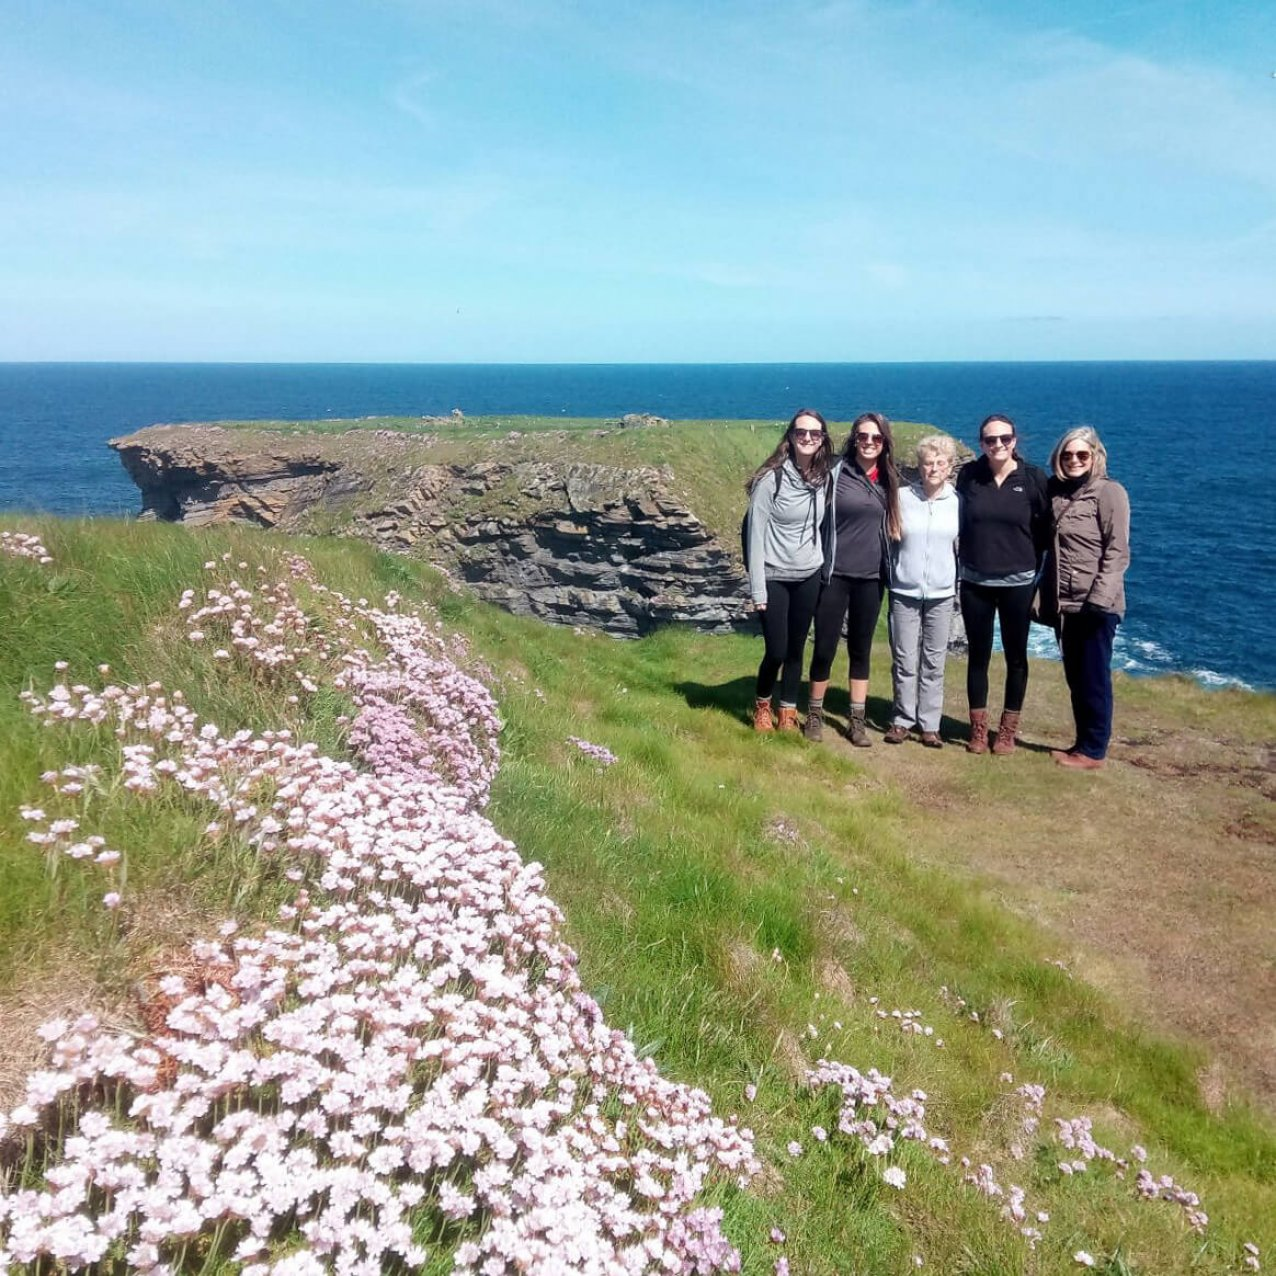 Family group posing on the coast in Clare with wildflowers in the foreground